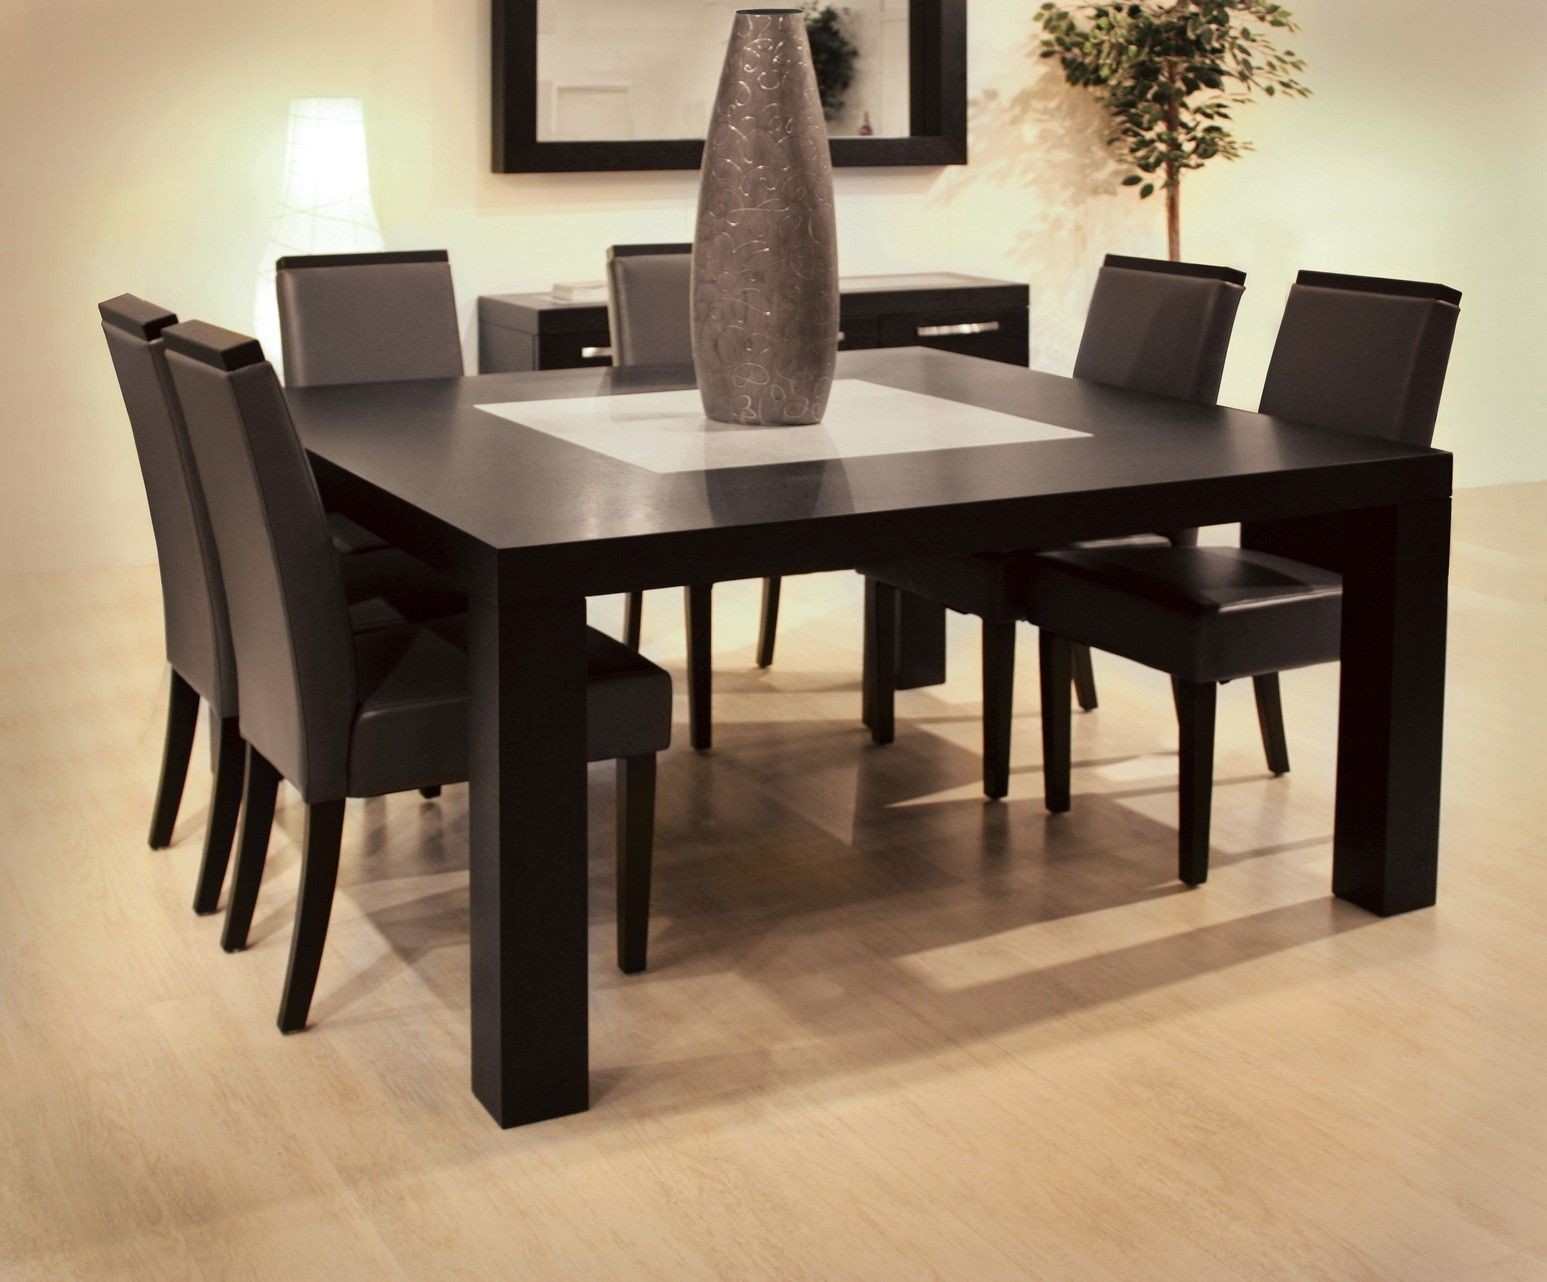 dining table sets wood modern  dining room  pinterest  square  - extended families enjoy square dining table for square dining table for granita  dining room inspiration